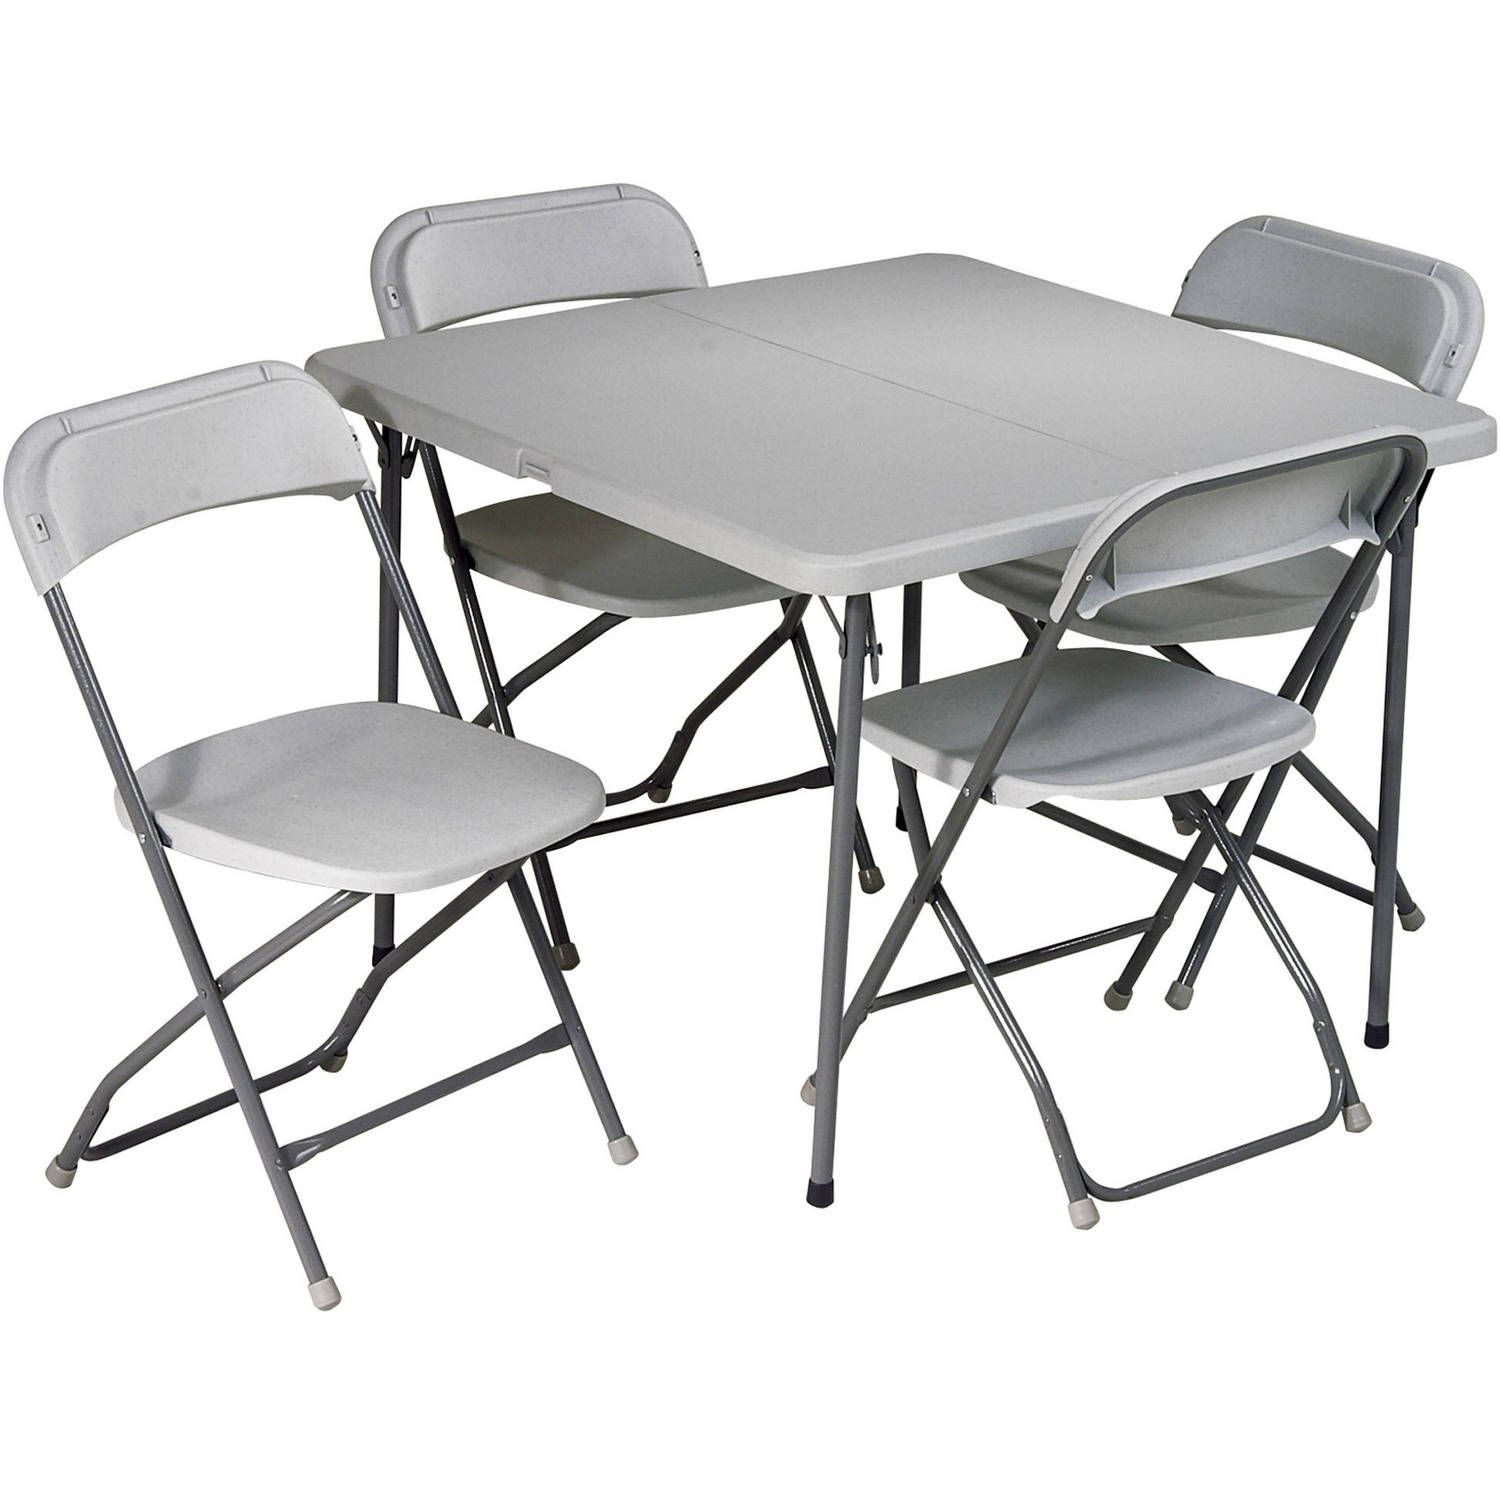 How To Buy A Folding Table And Chairs Set Designalls In 2020 Outdoor Folding Table Folding Table Table And Chair Sets